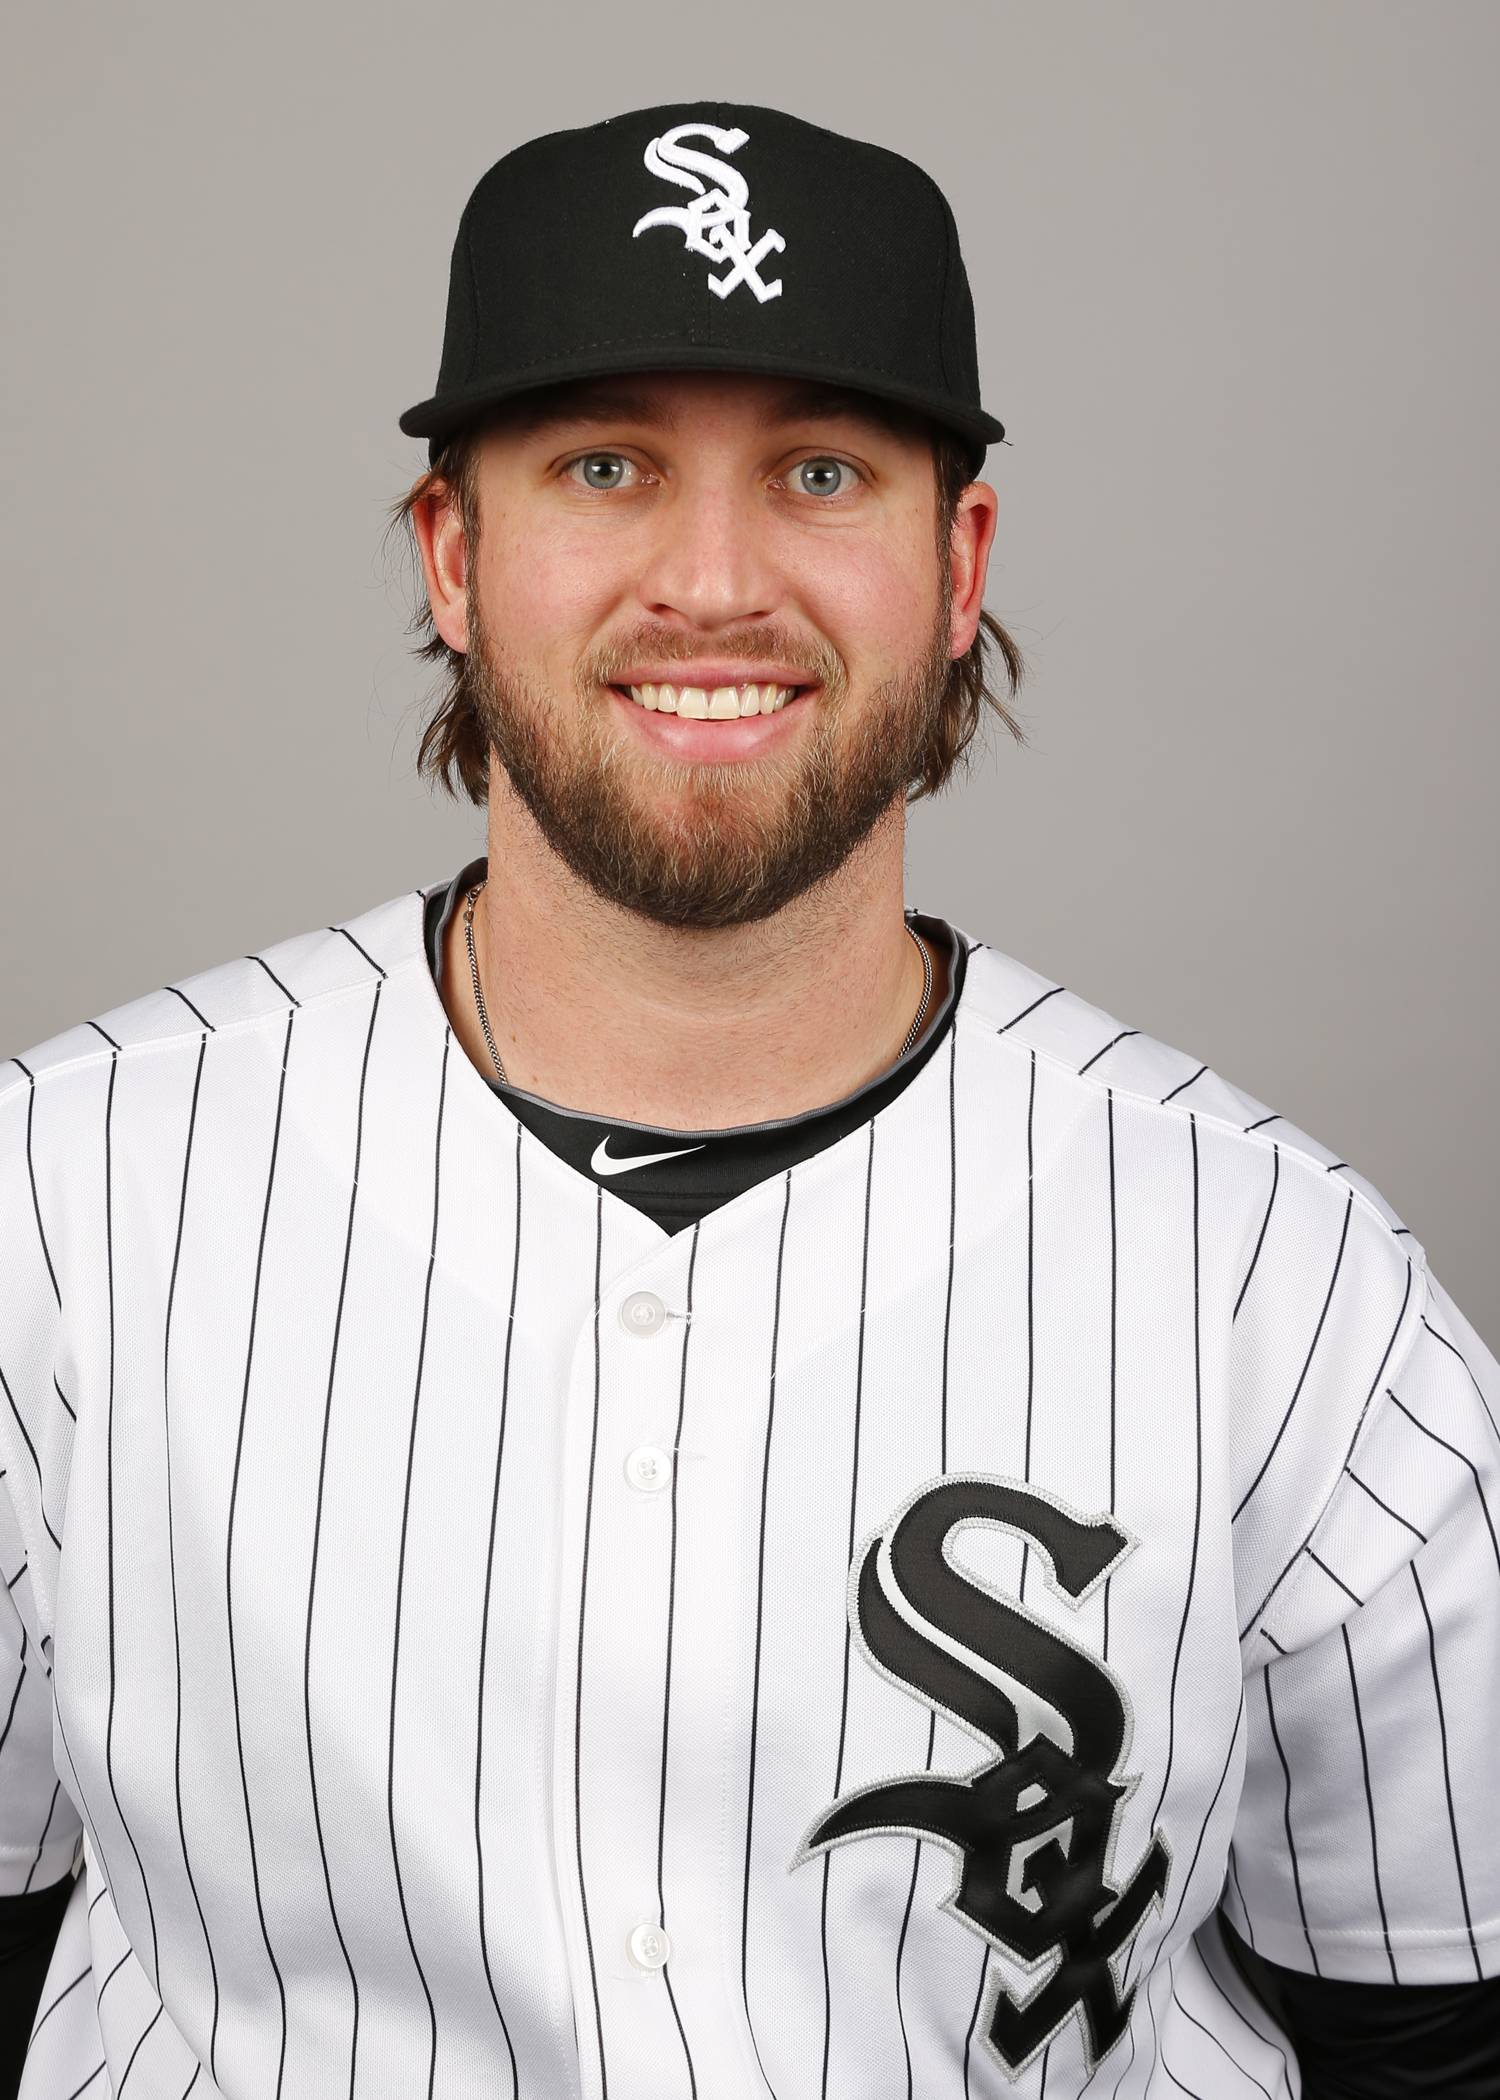 If Andy Wilkins was hoping to make a good first impression with the White Sox, well, it hasn't gone so well. Called up from Class AAA Charlotte on Sunday to replace Adam Dunn, who was traded to the Oakland A's, Wilkins arrived with some eye-popping credentials.